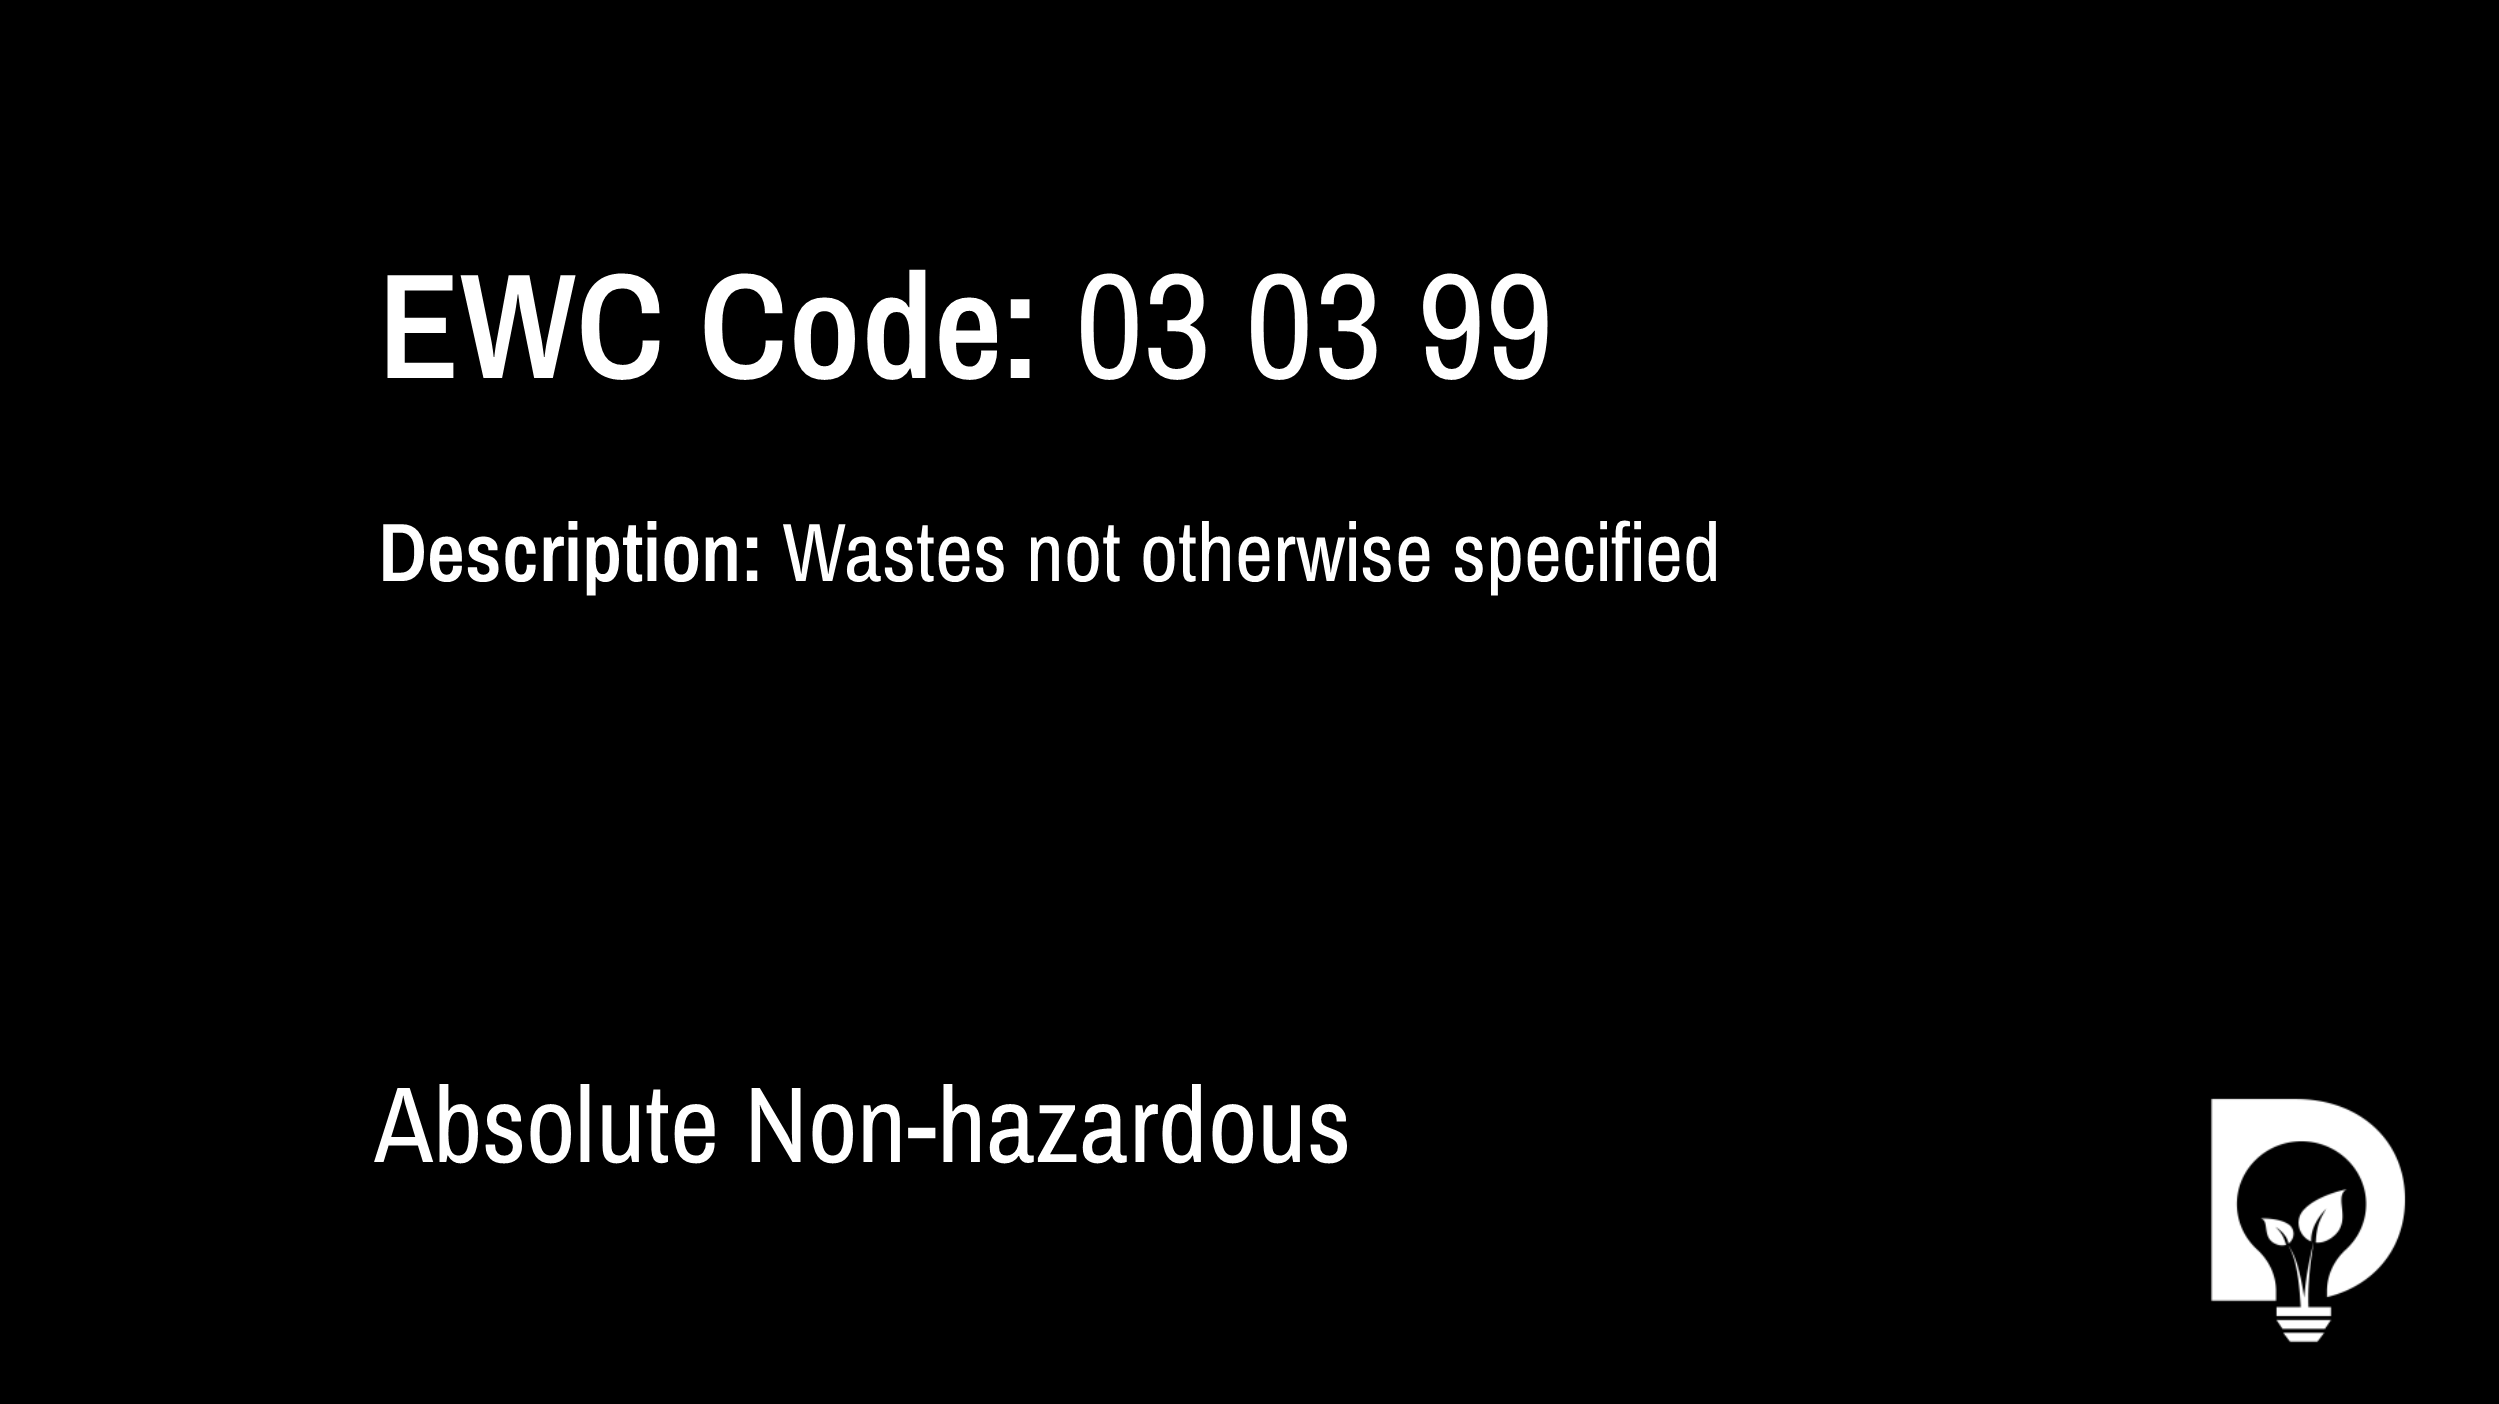 EWC Code: 03 03 99 - wastes not otherwise specified. Type: Absolute Non-hazardous. Image by Dsposal